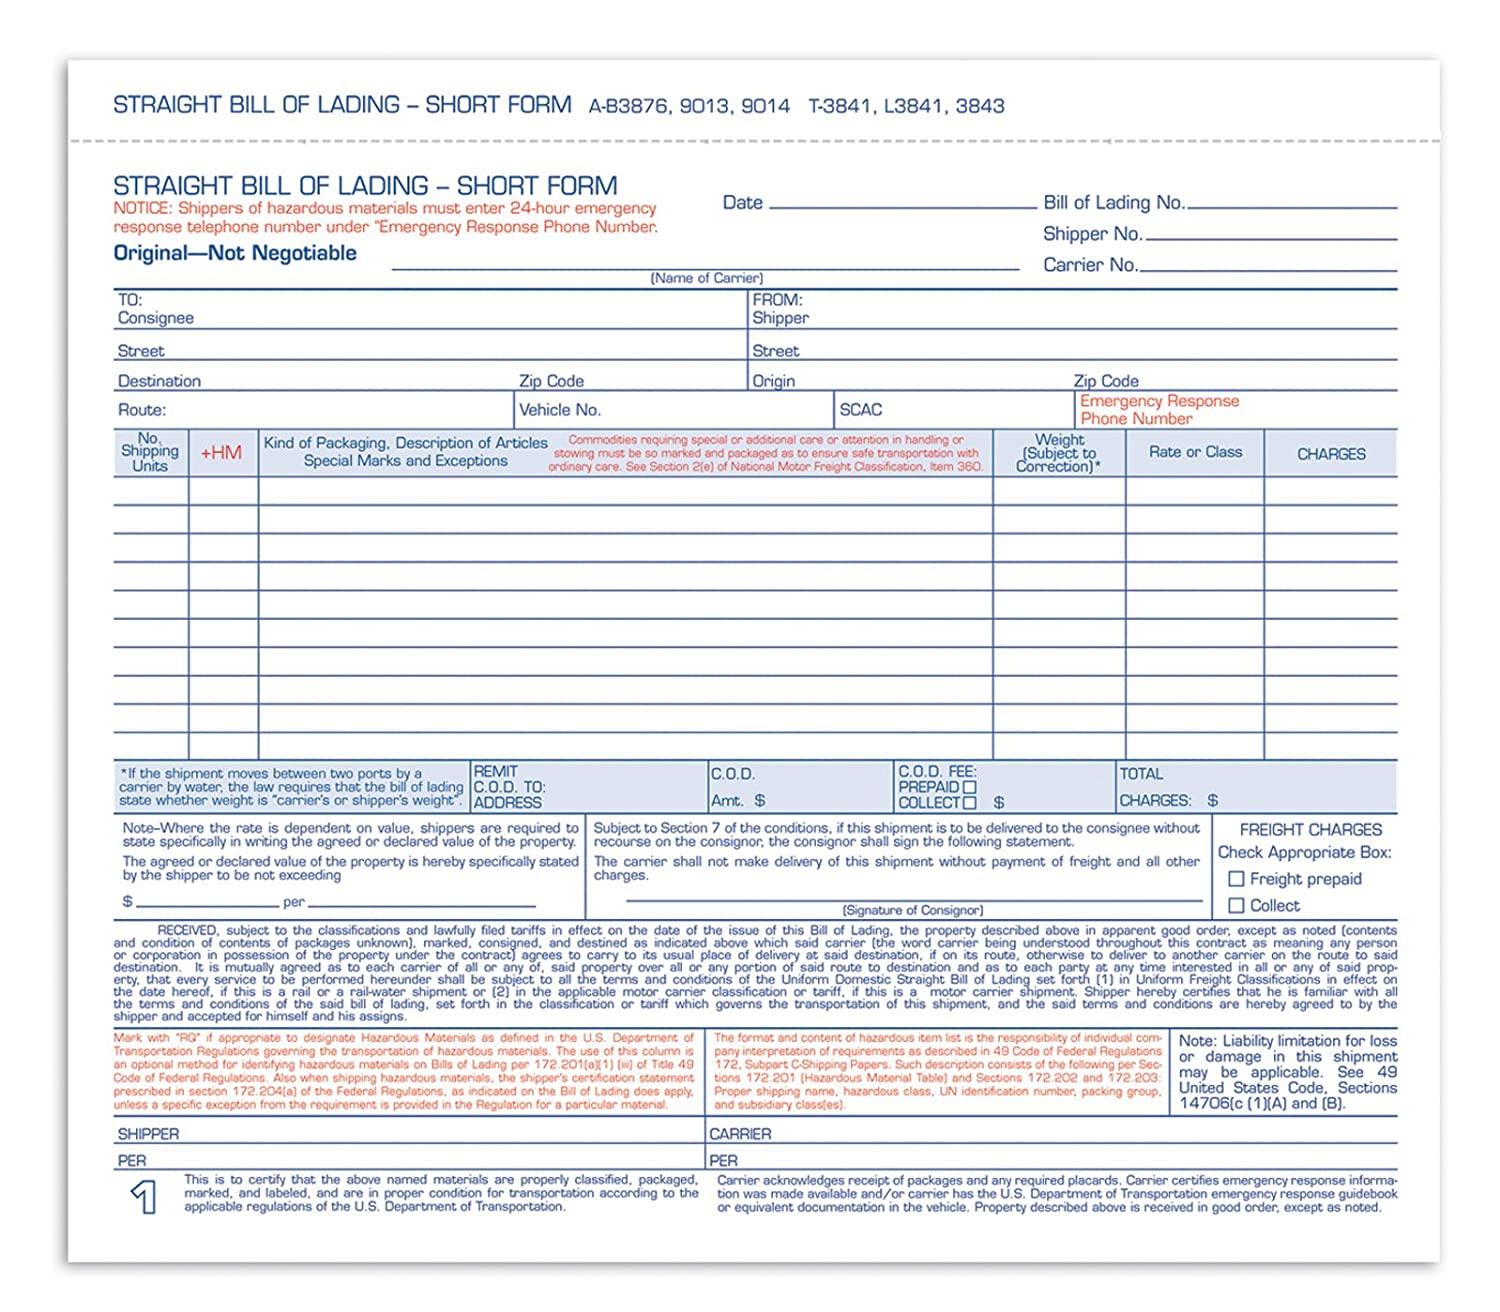 Amazon.com : Adams Bill Of Lading Short Form, 8 1/2 X 7 7/16 Inches, White,  3 Part, 250 Count (B3876) : Blank Shipping Forms : Office Products  Free Bill Of Lading Template